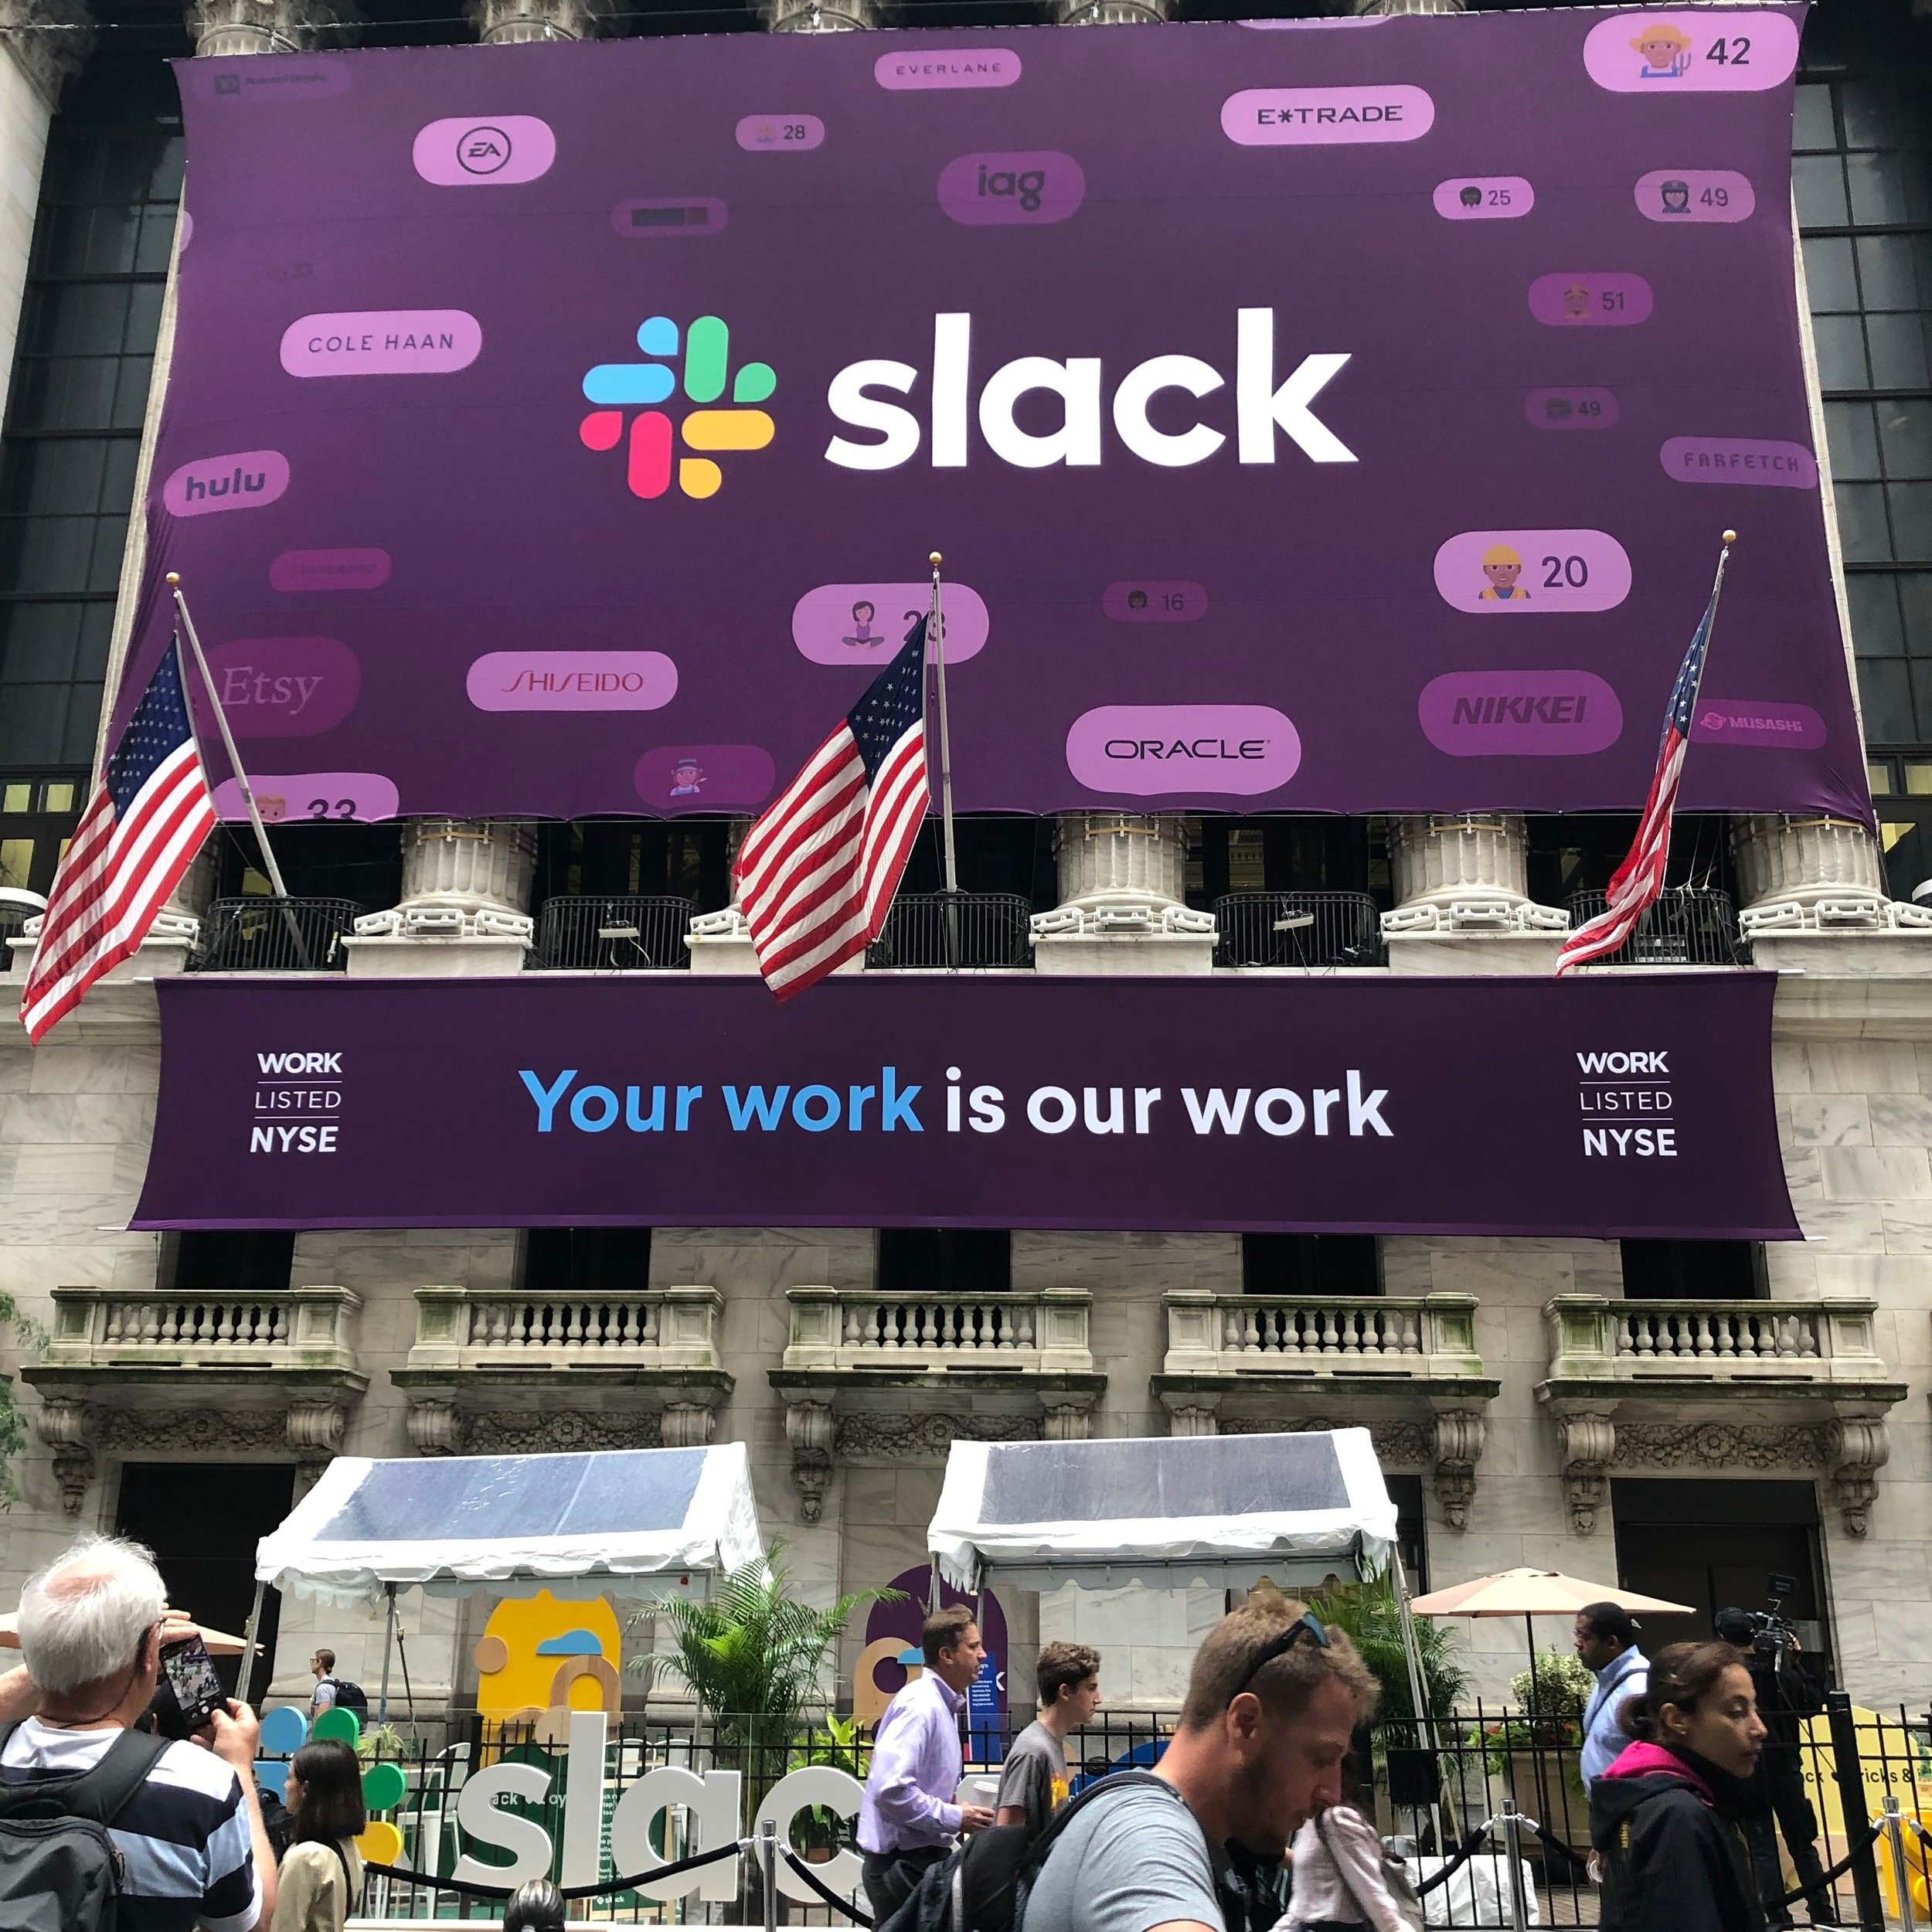 Slack At The NYSE - A custom interactive experience at the NYSE for Slack's direct listing celebrated the amazing work of people who use Slack every day.